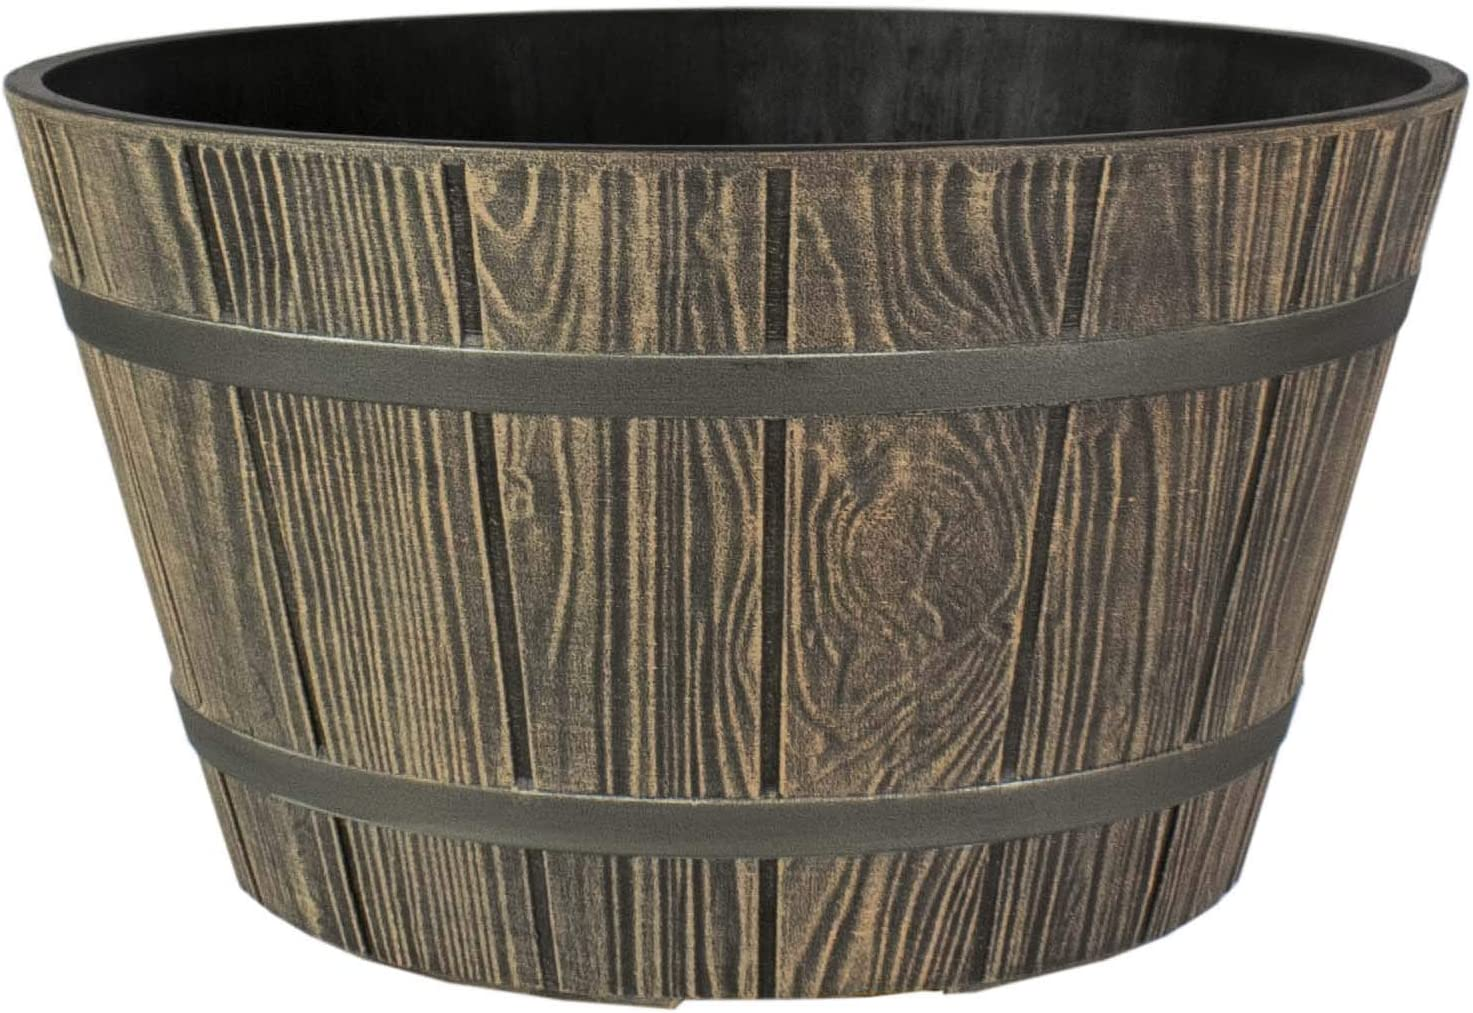 The HC Companies WBP16000P82 Whiskey Barrel Planter, Aged Oak